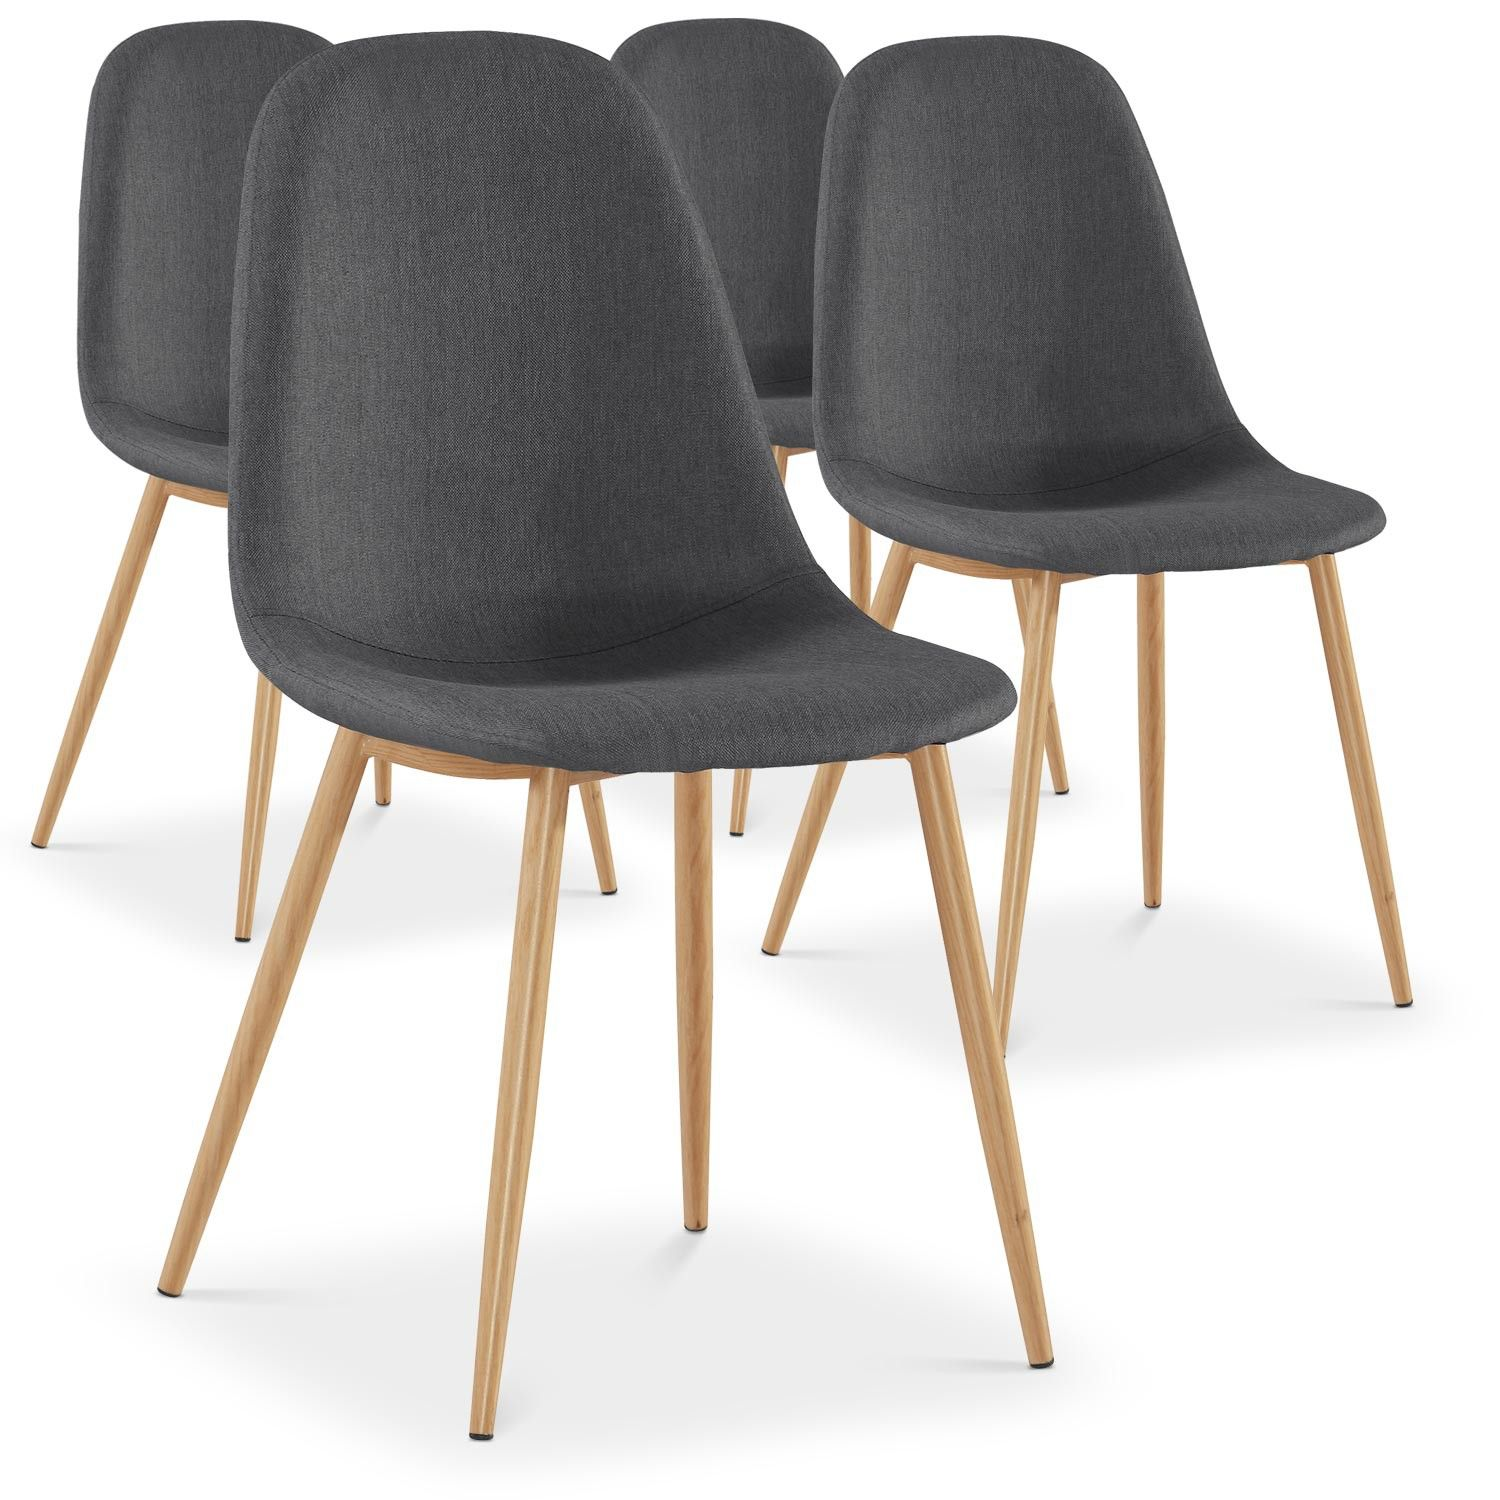 chaises scandinaves gao tissu gris